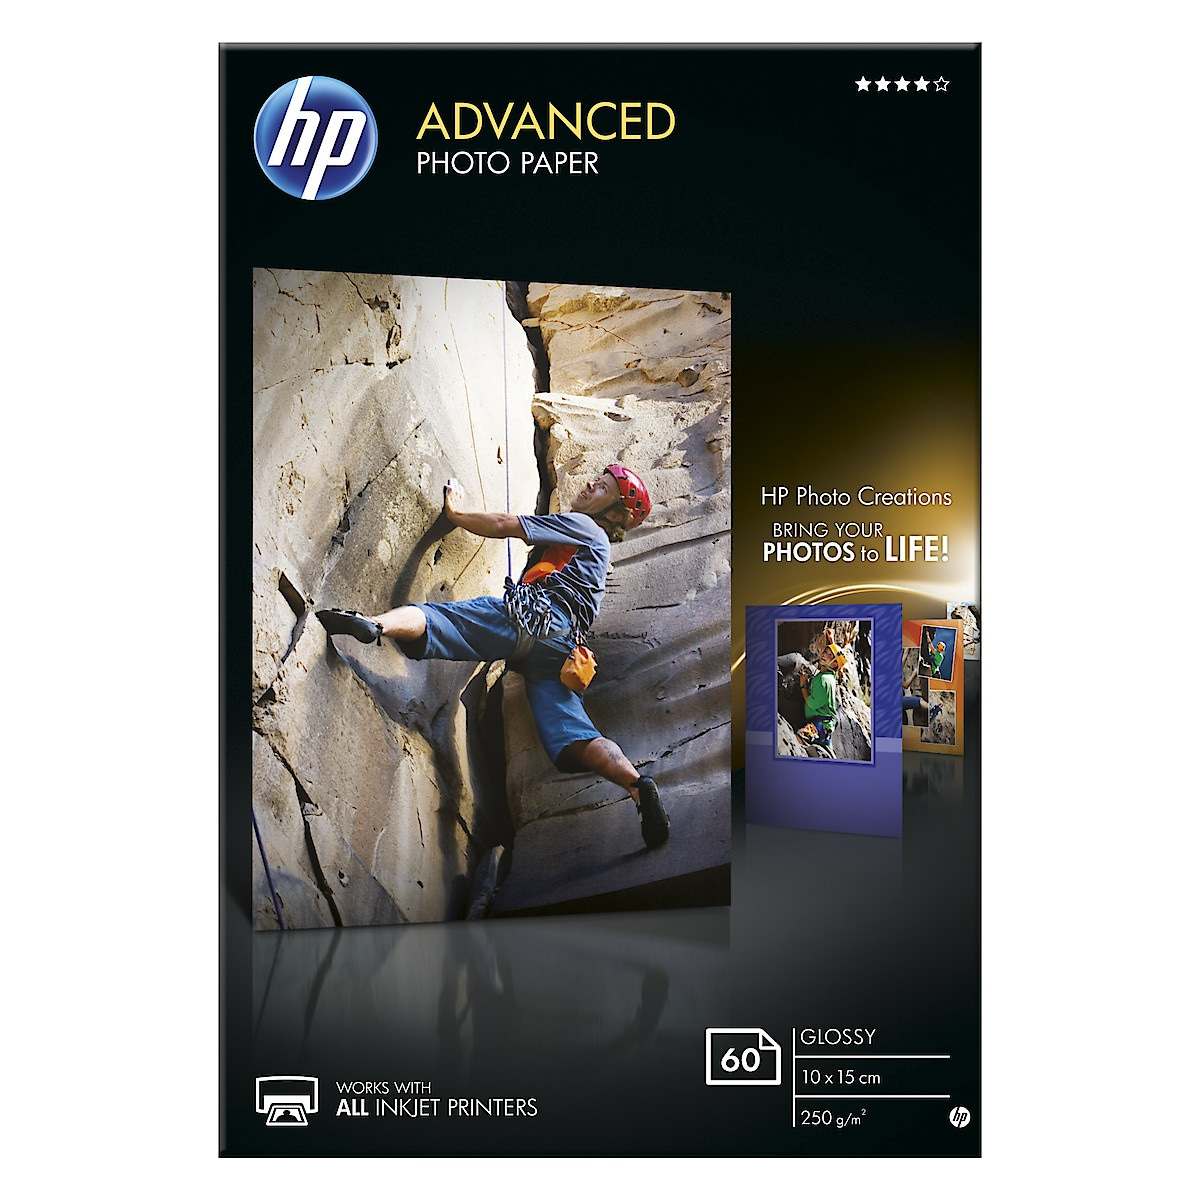 HP Advanced 10x15 cm Glossy Photo Paper